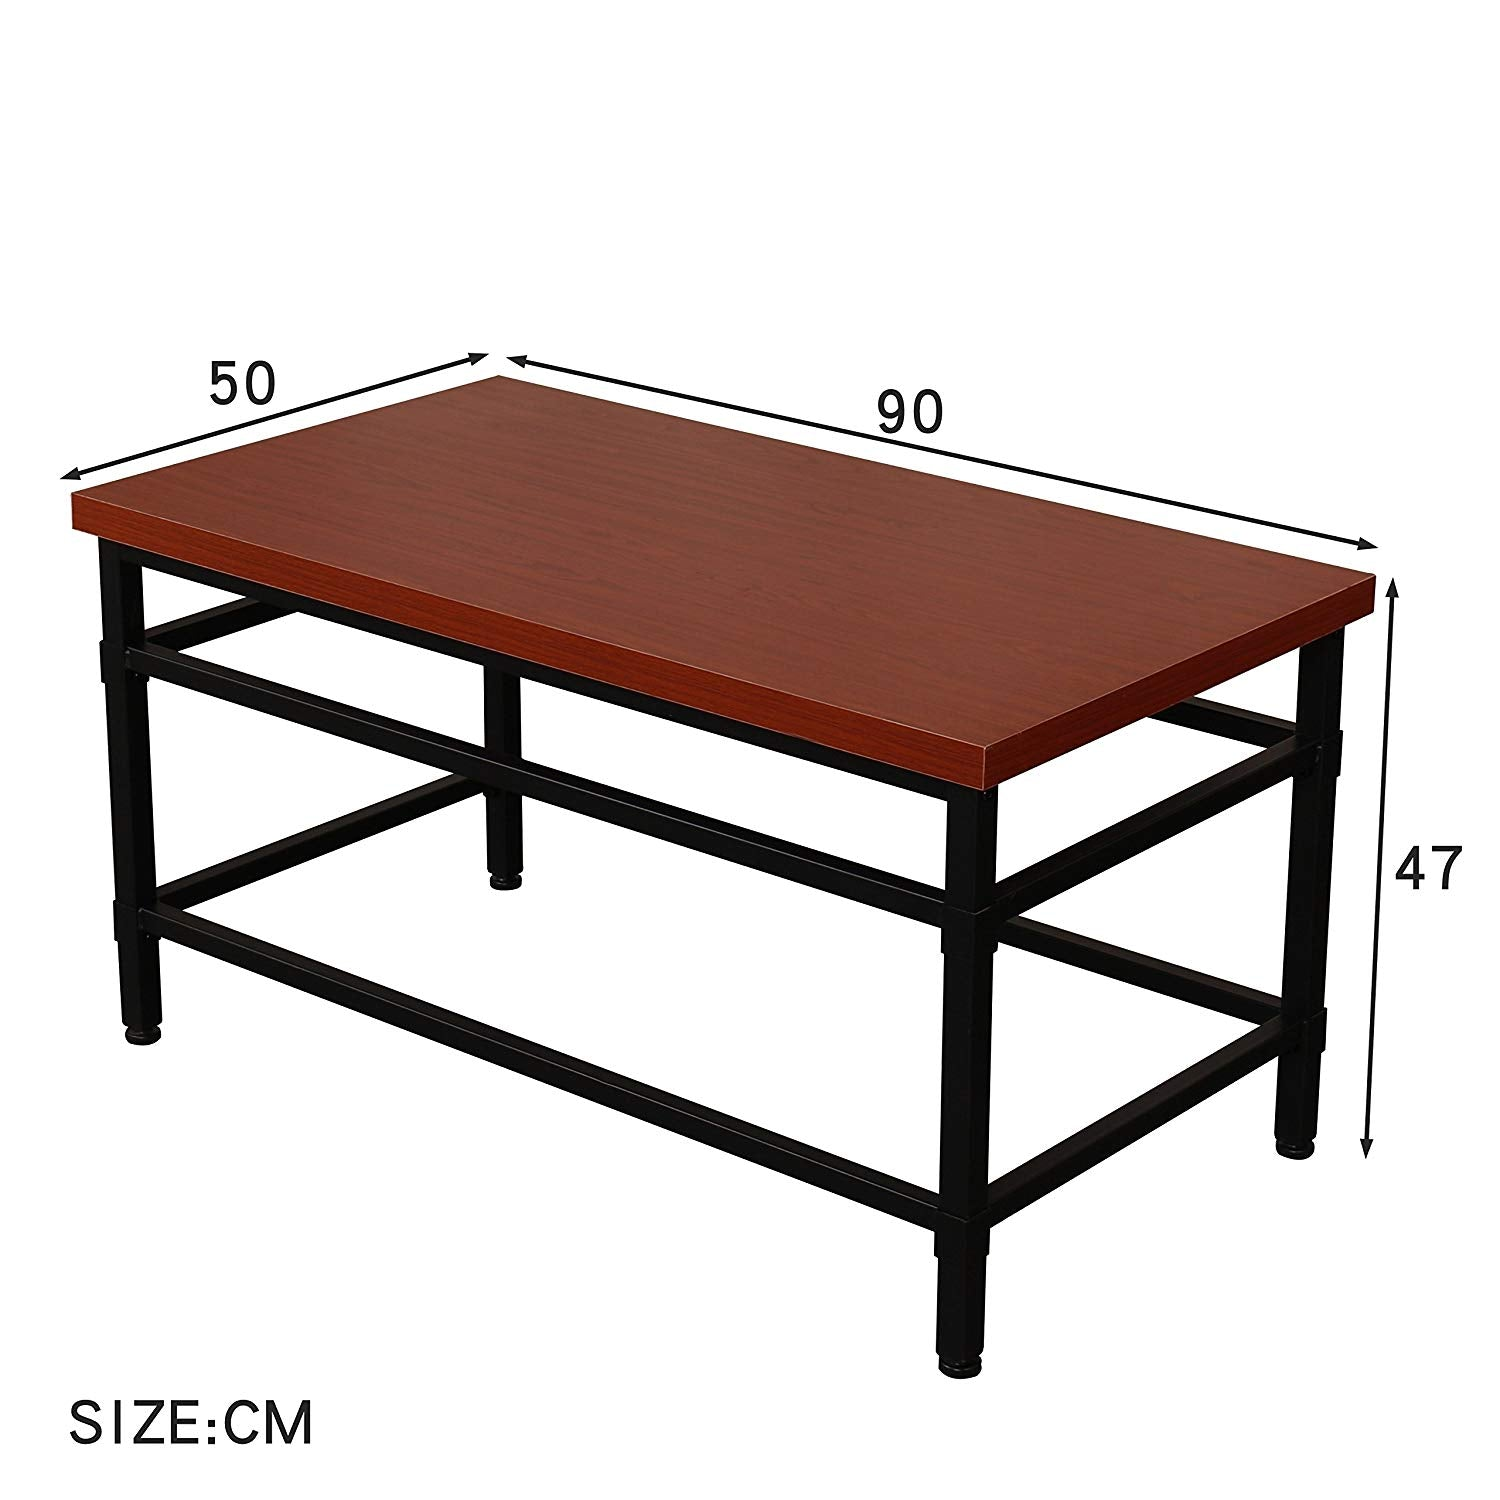 MORGAN Mahogany Colour Coffee Table 90 x 50 cm with Black Steel ...